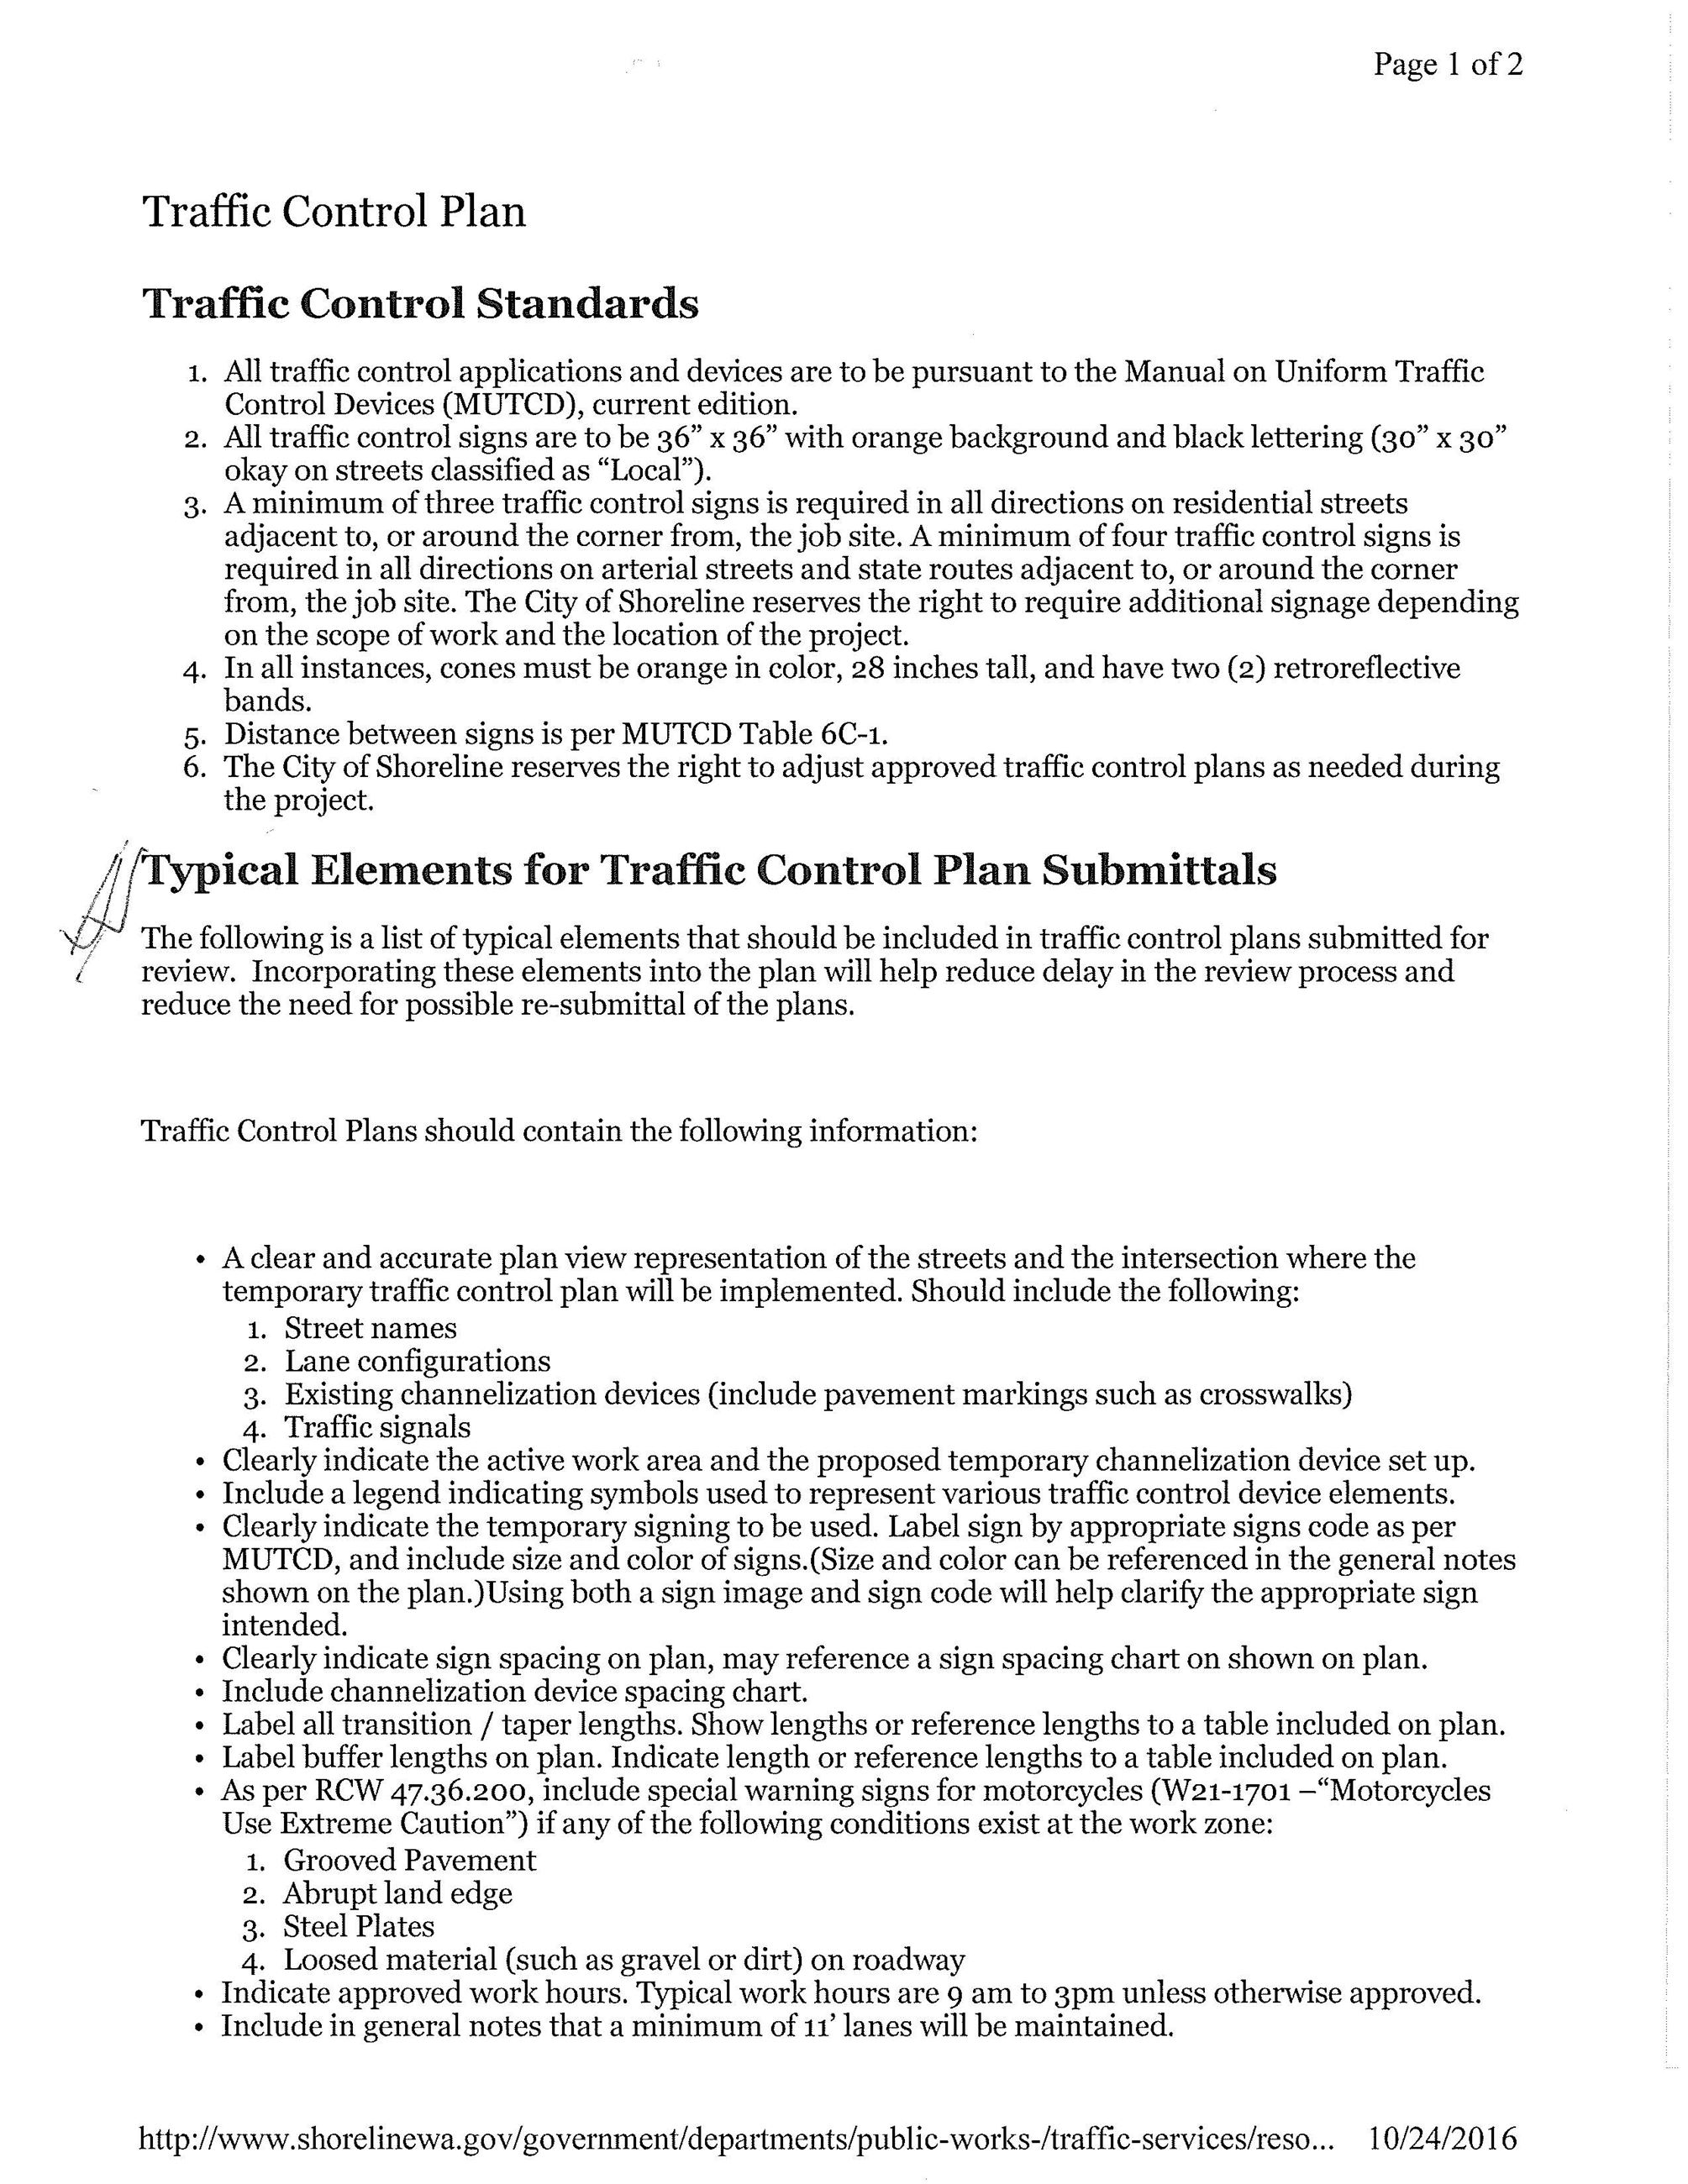 Traffic Control Standards